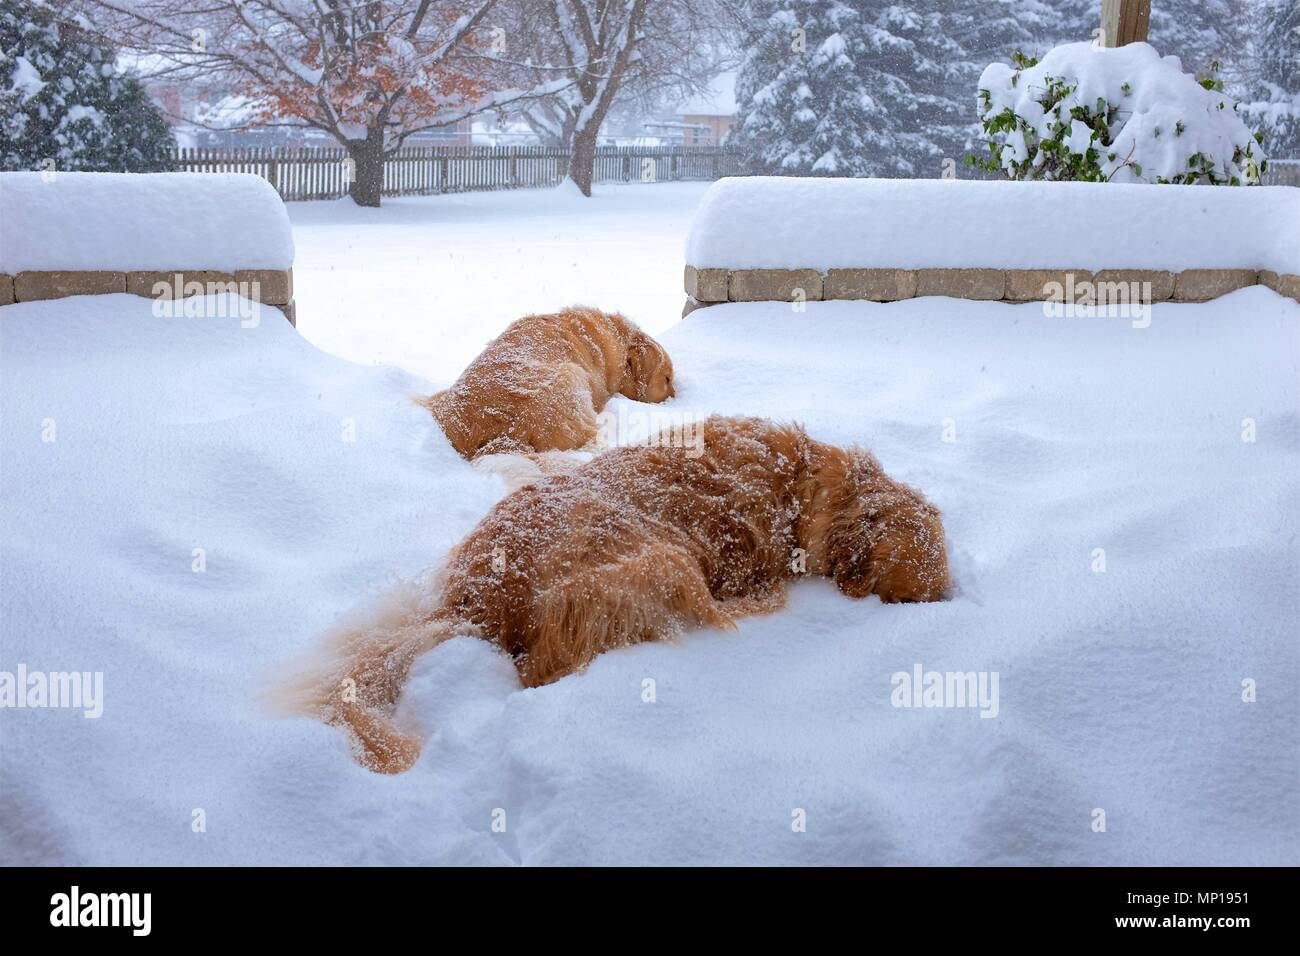 Two Golden Retrievers  play 'Simon says' in the snow. - Stock Image